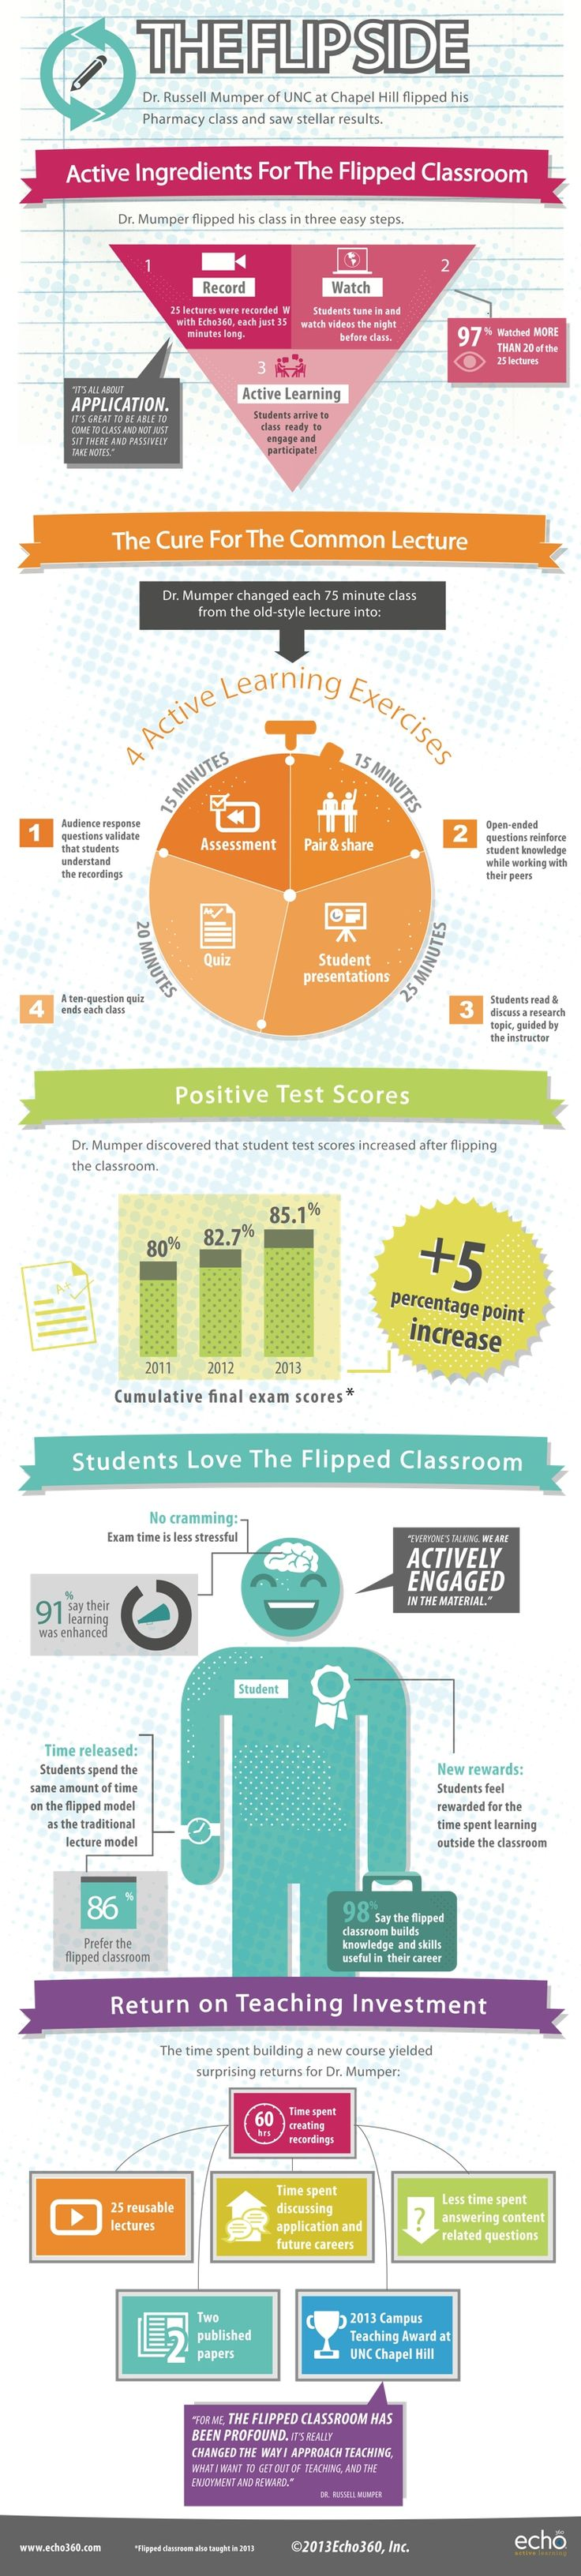 """Why 86 Percent of UNC-Chapel Hill Students Prefer the Flipped Classroom: Students spend more time discussing the application of learning content to their careers and less time scribbling notes."" #flipchat #edtech #infographic"